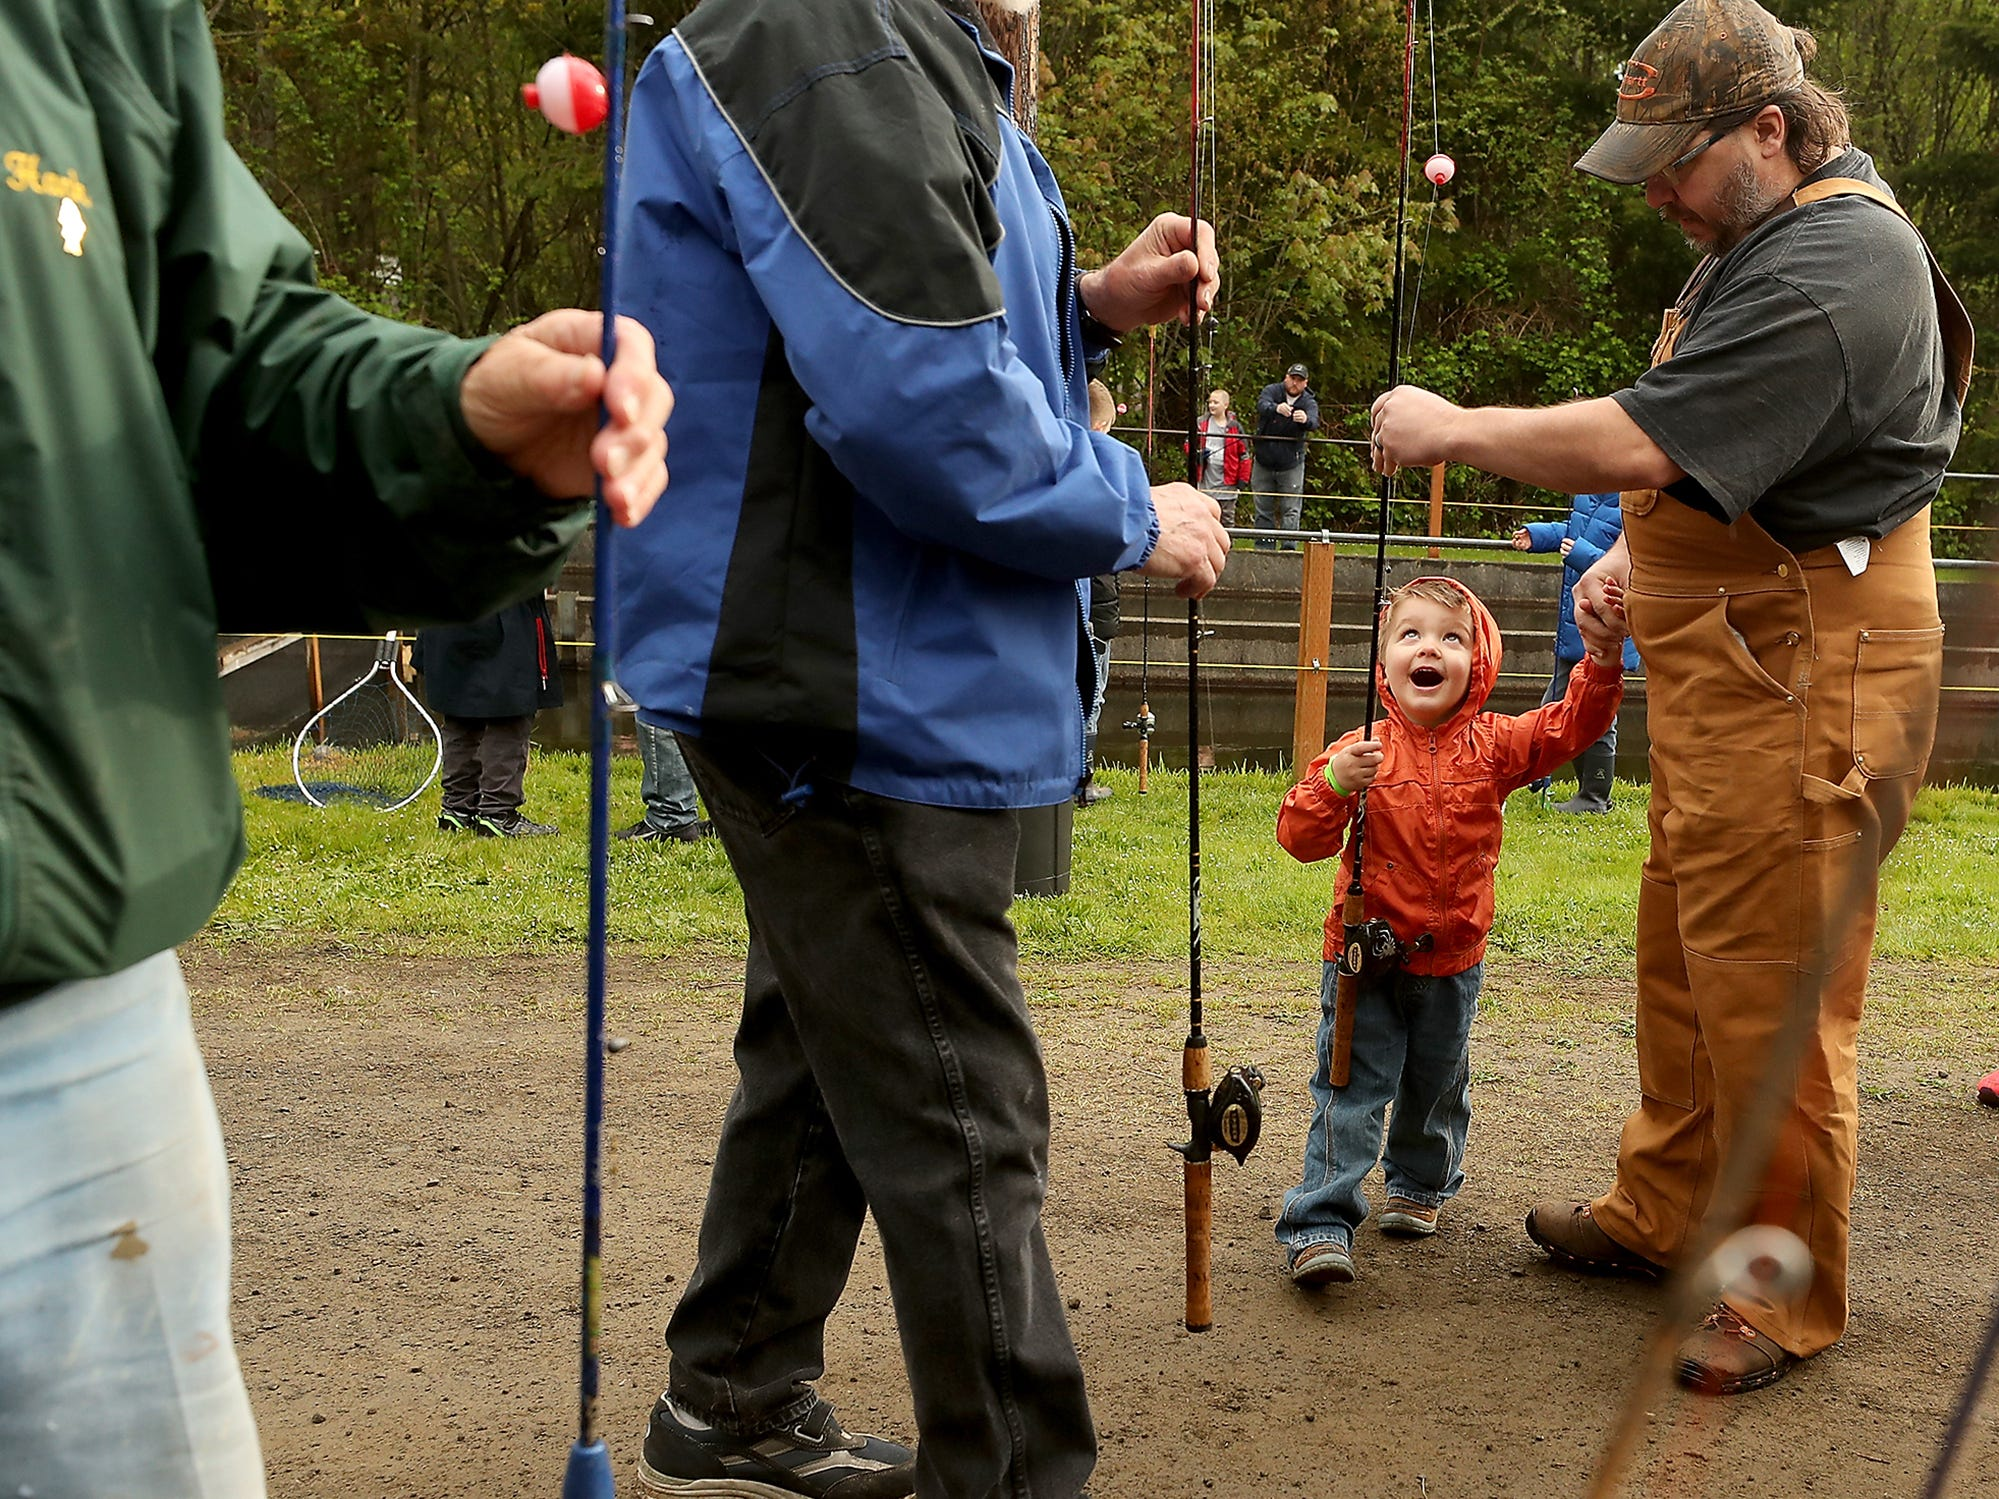 Three-year-old Owen Rasmussen is in awe as his father Eric hands him his very own fishing rod to use during the Kids Fishing Party at Jarstad Park in Gorst on Saturday, April 27, 2019.  The Kitsap Poggie Club - who host the event every year on the opening day of trout season - stocks the hatchery raceway with trout and provides fishing gear, bait, snacks and fish cleaning to those taking part in the fishing day of fun.